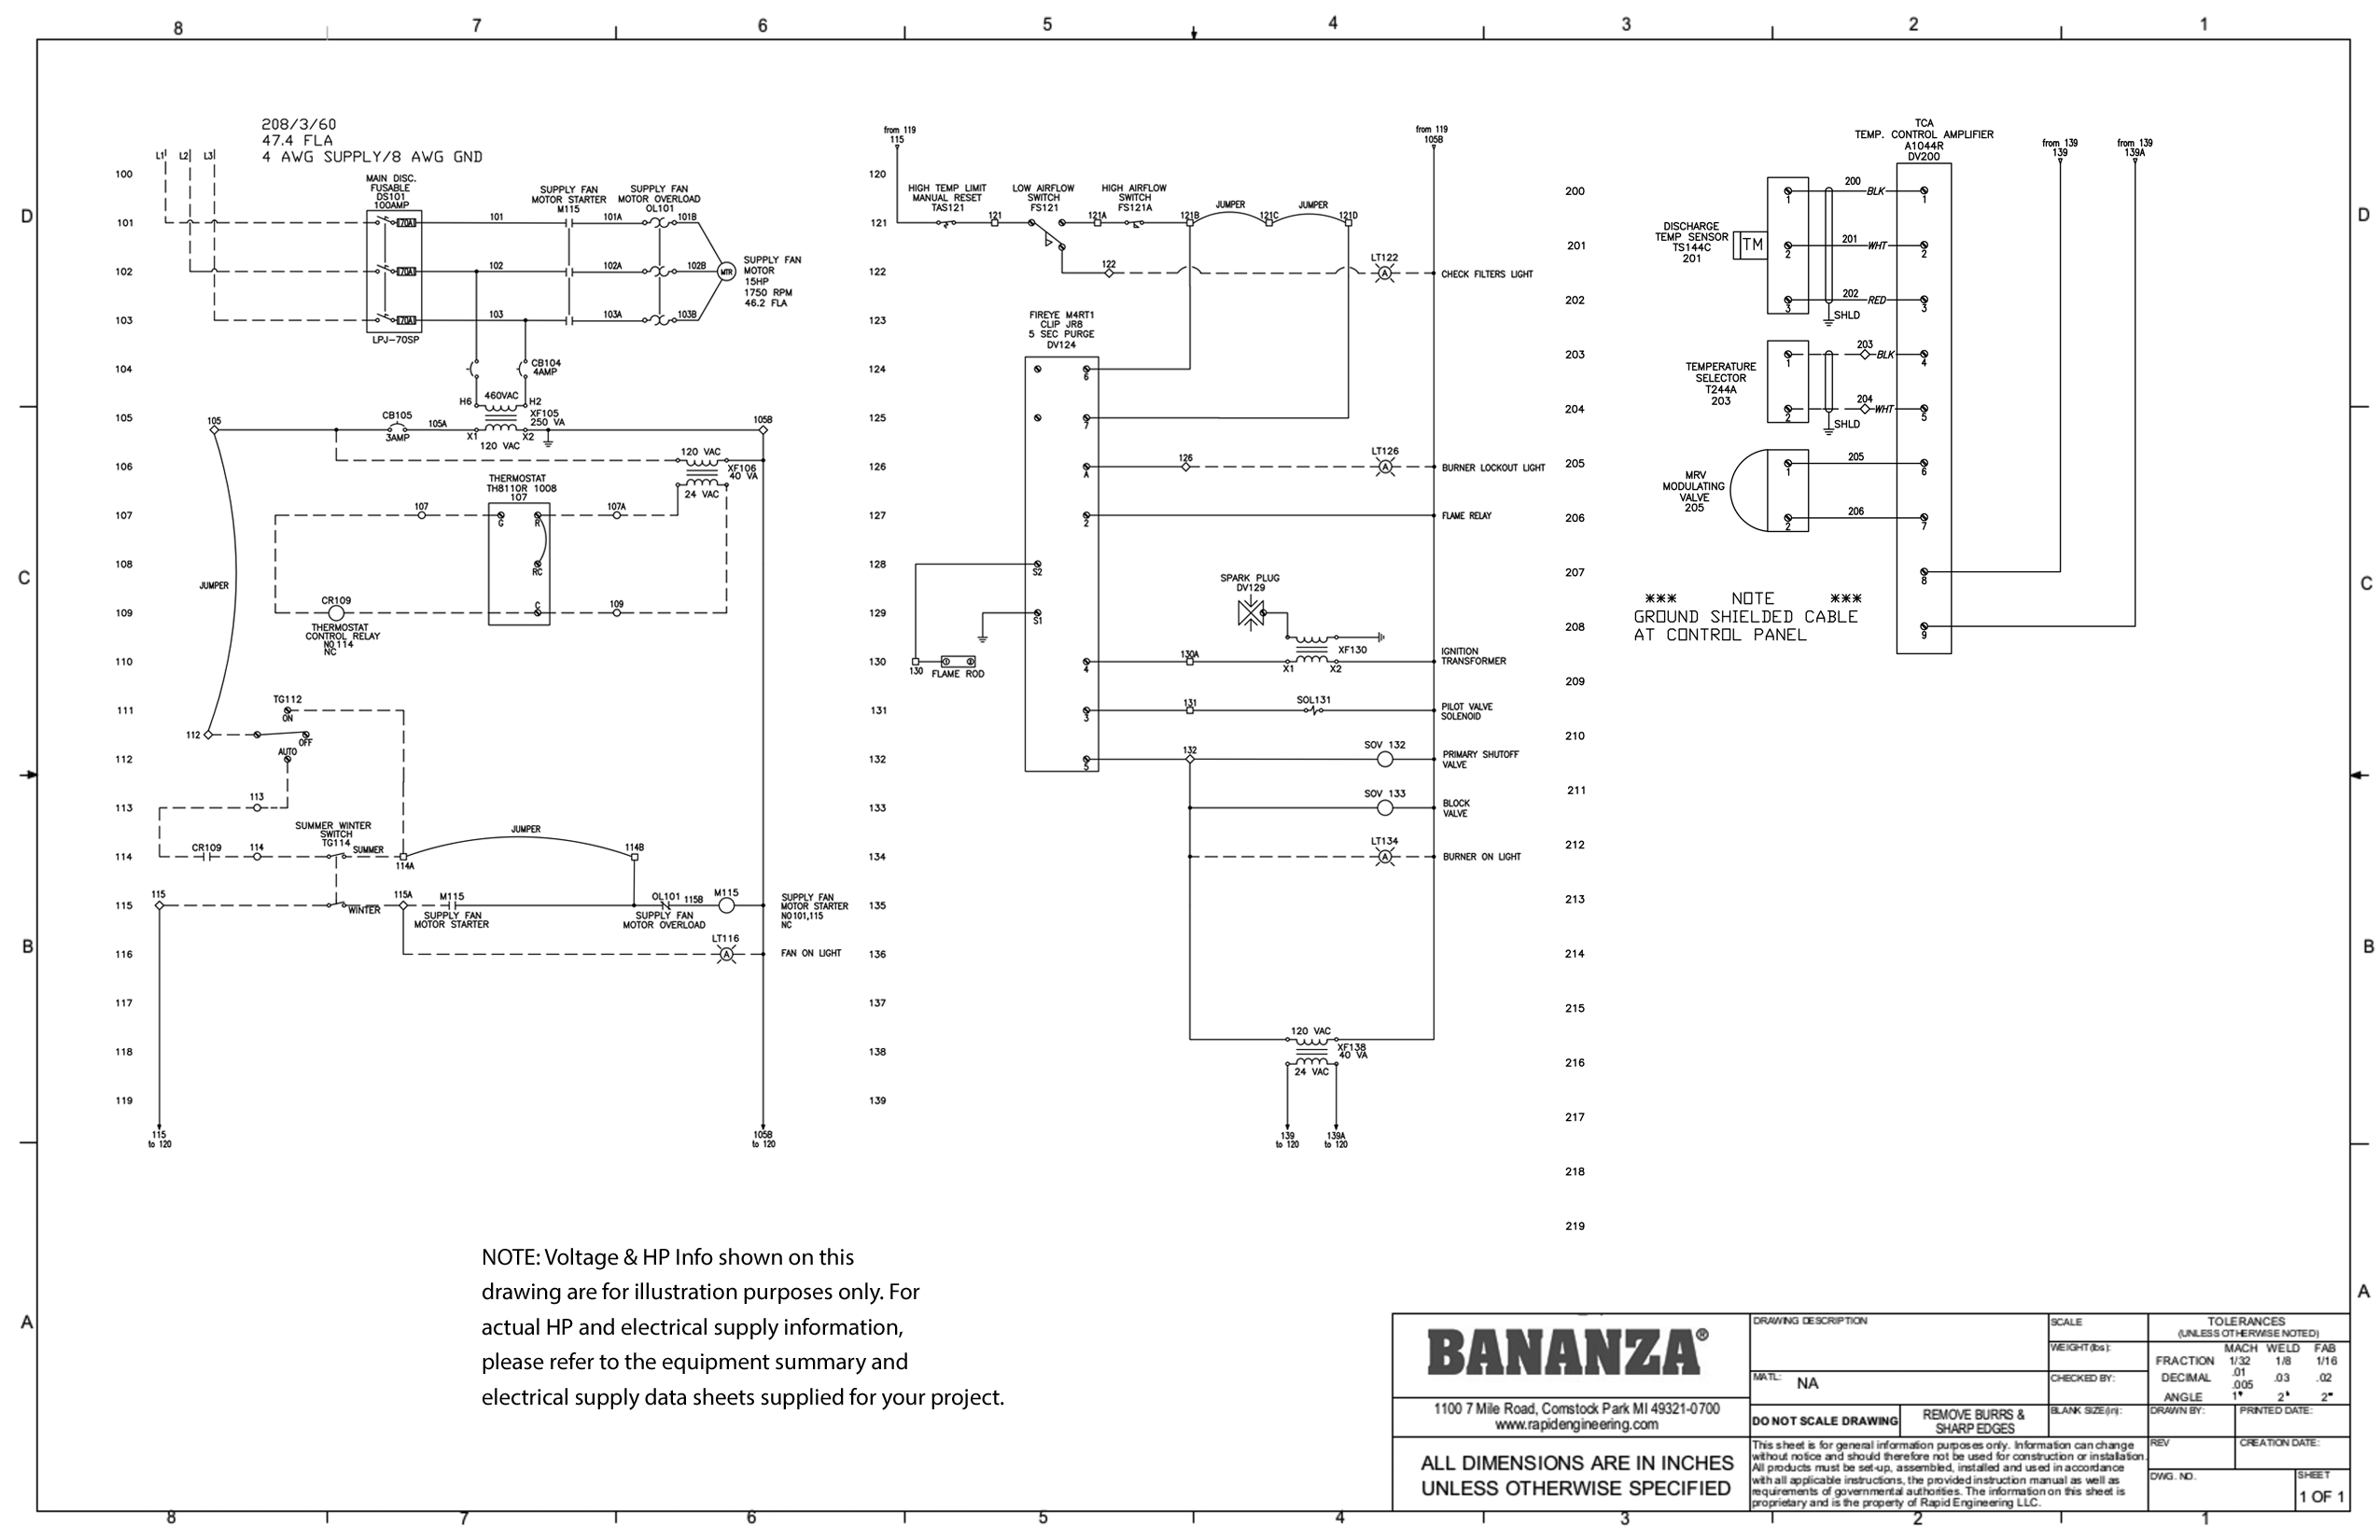 Direct Fired Submittal Drawings From Bananza Wireing 208 Motor Starter Diagram Dtc